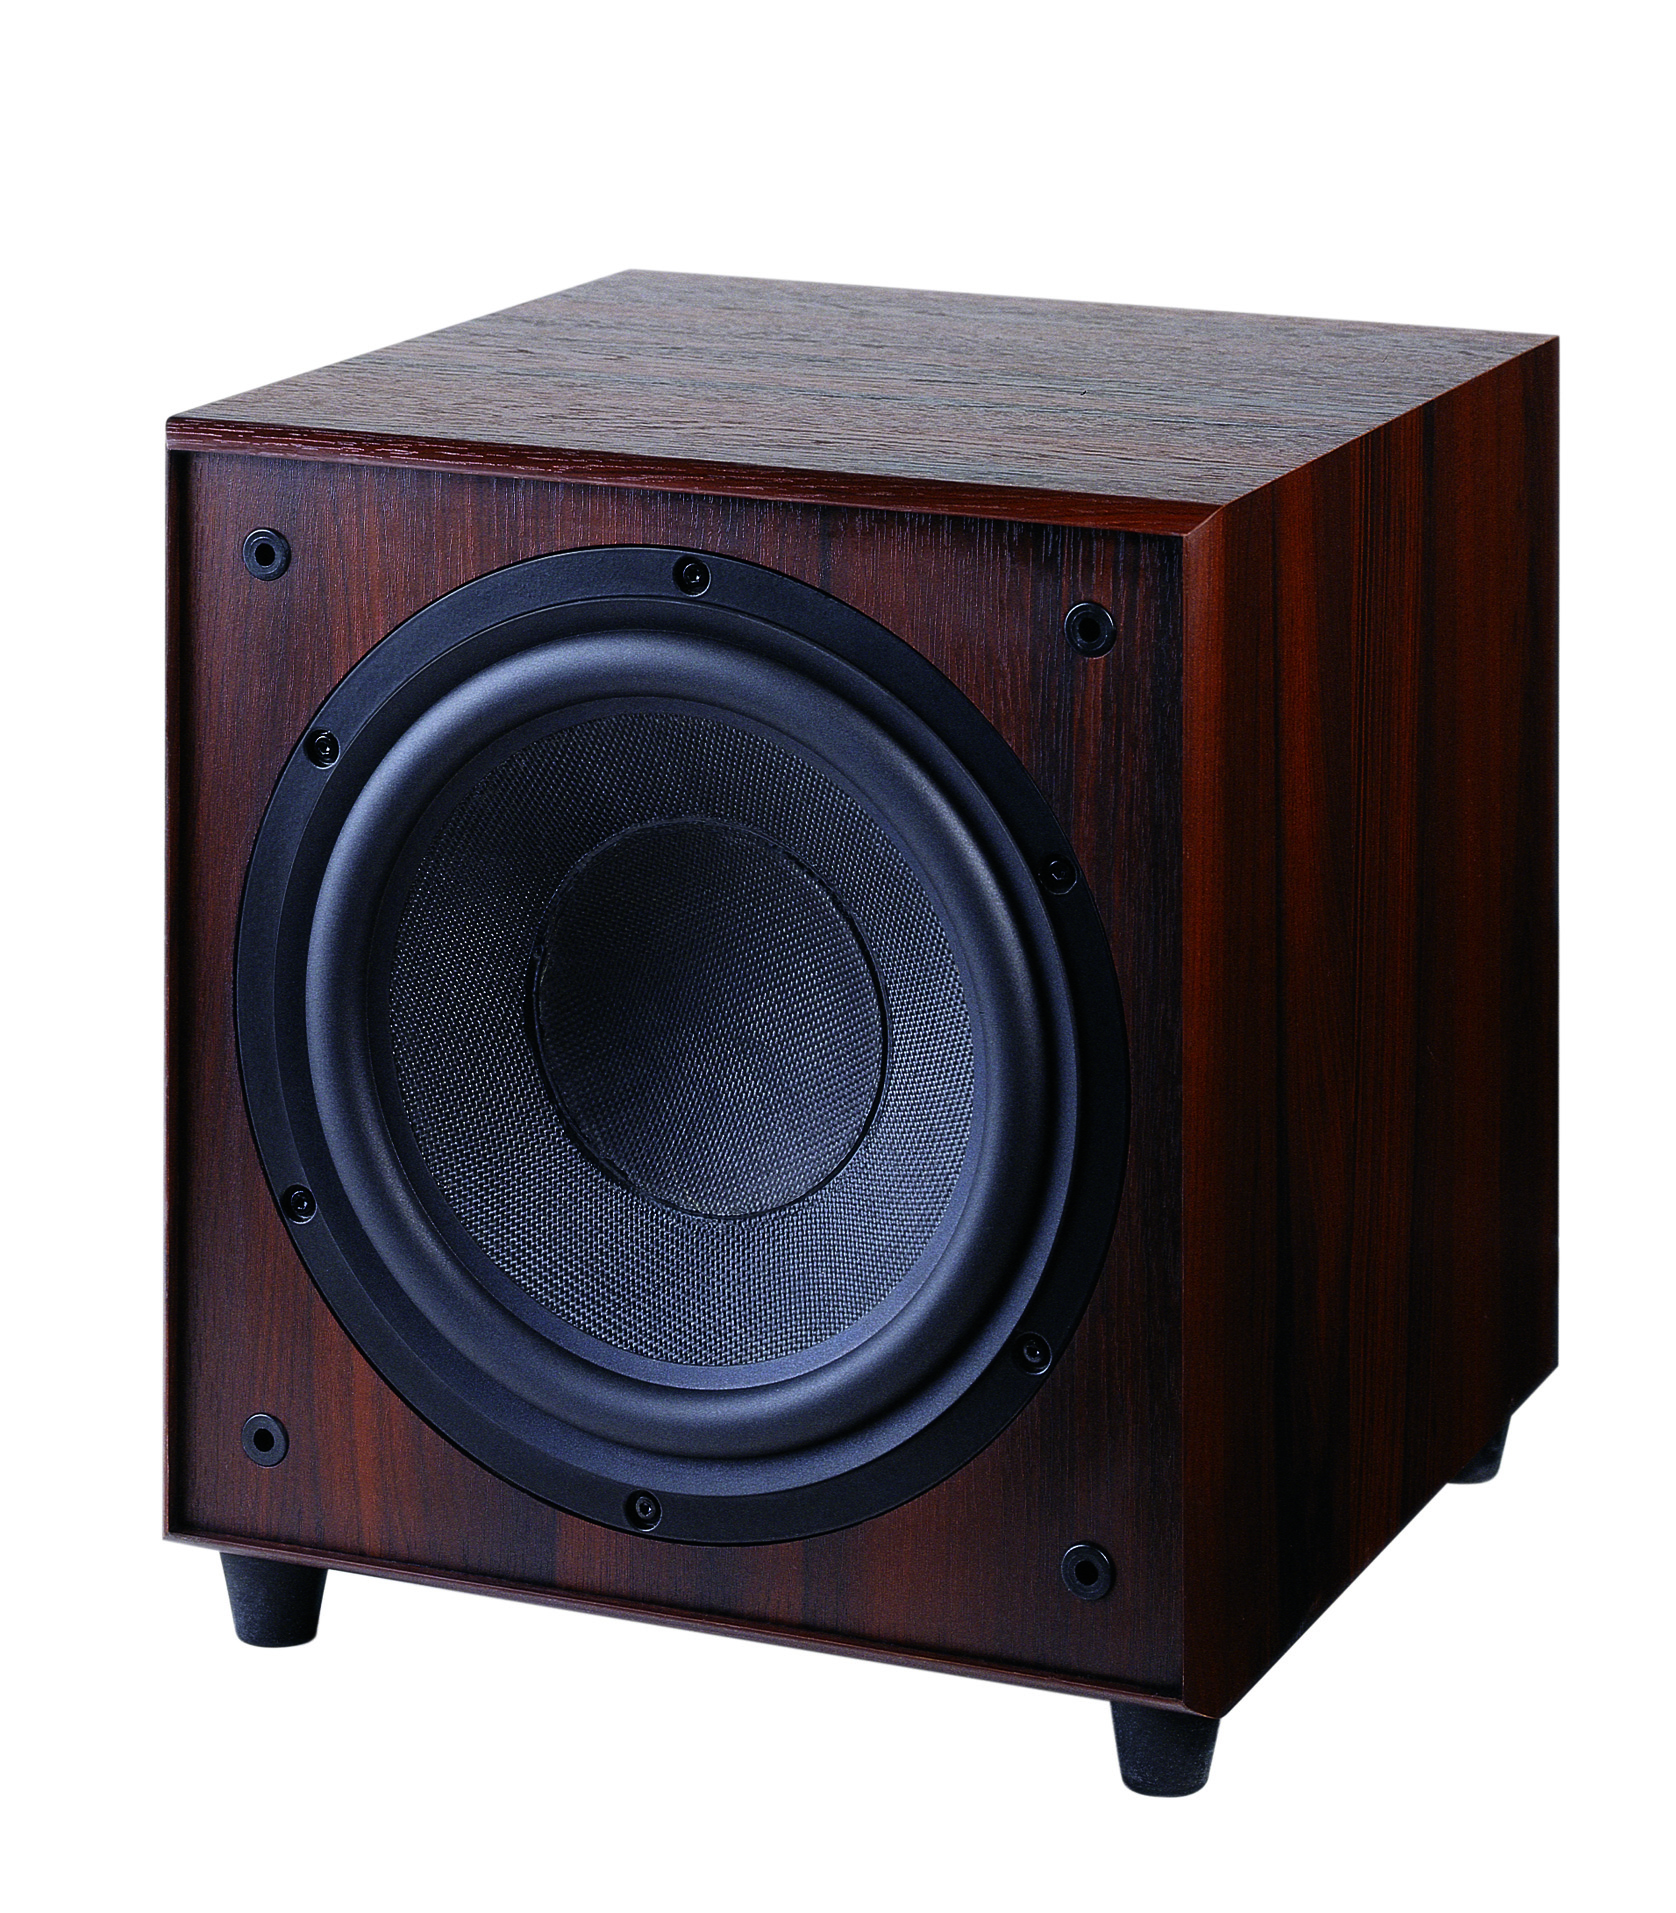 Jual Wharfedale Diamond SW 150 HOT Subwoofer 150 Watt 10